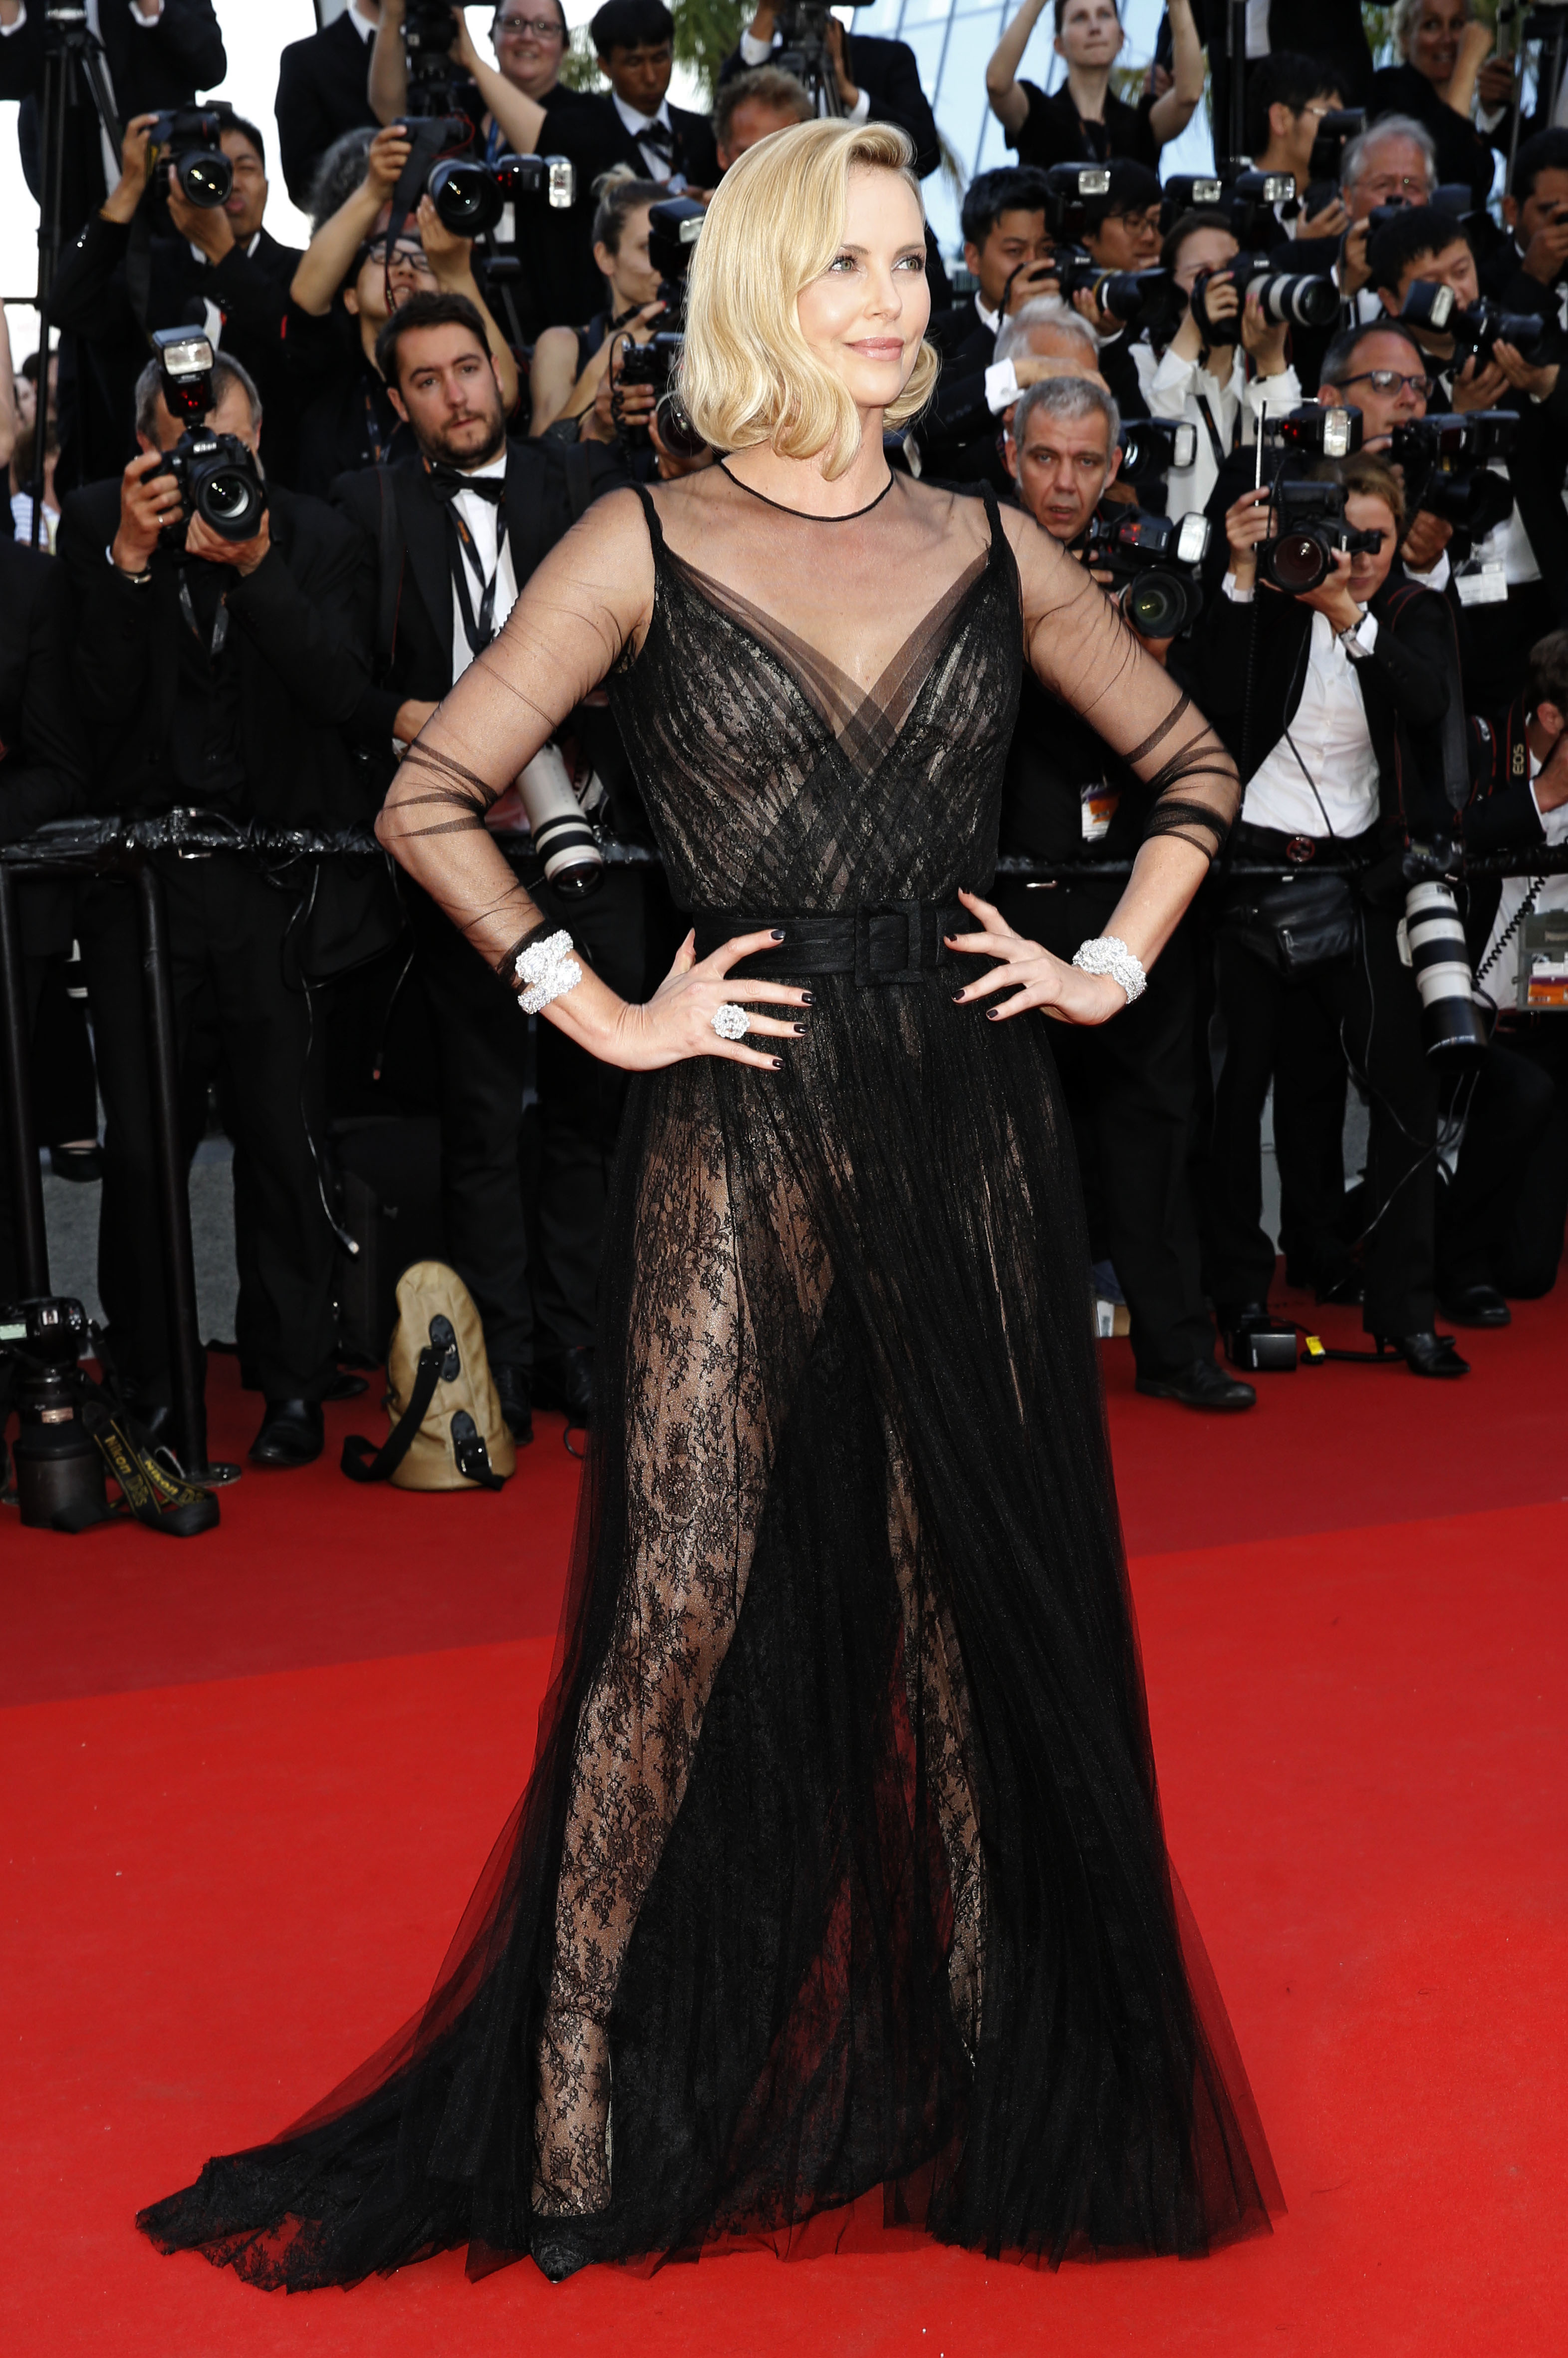 70th Annual Cannes Film Festival - 70th Anniversary Gala                                    Featuring: Charlize Theron                  Where: Cannes, Alpes-Maritimes, France                  When: 23 May 2017                  Credit: Dave Bedrosian/Future Image/WENN.com